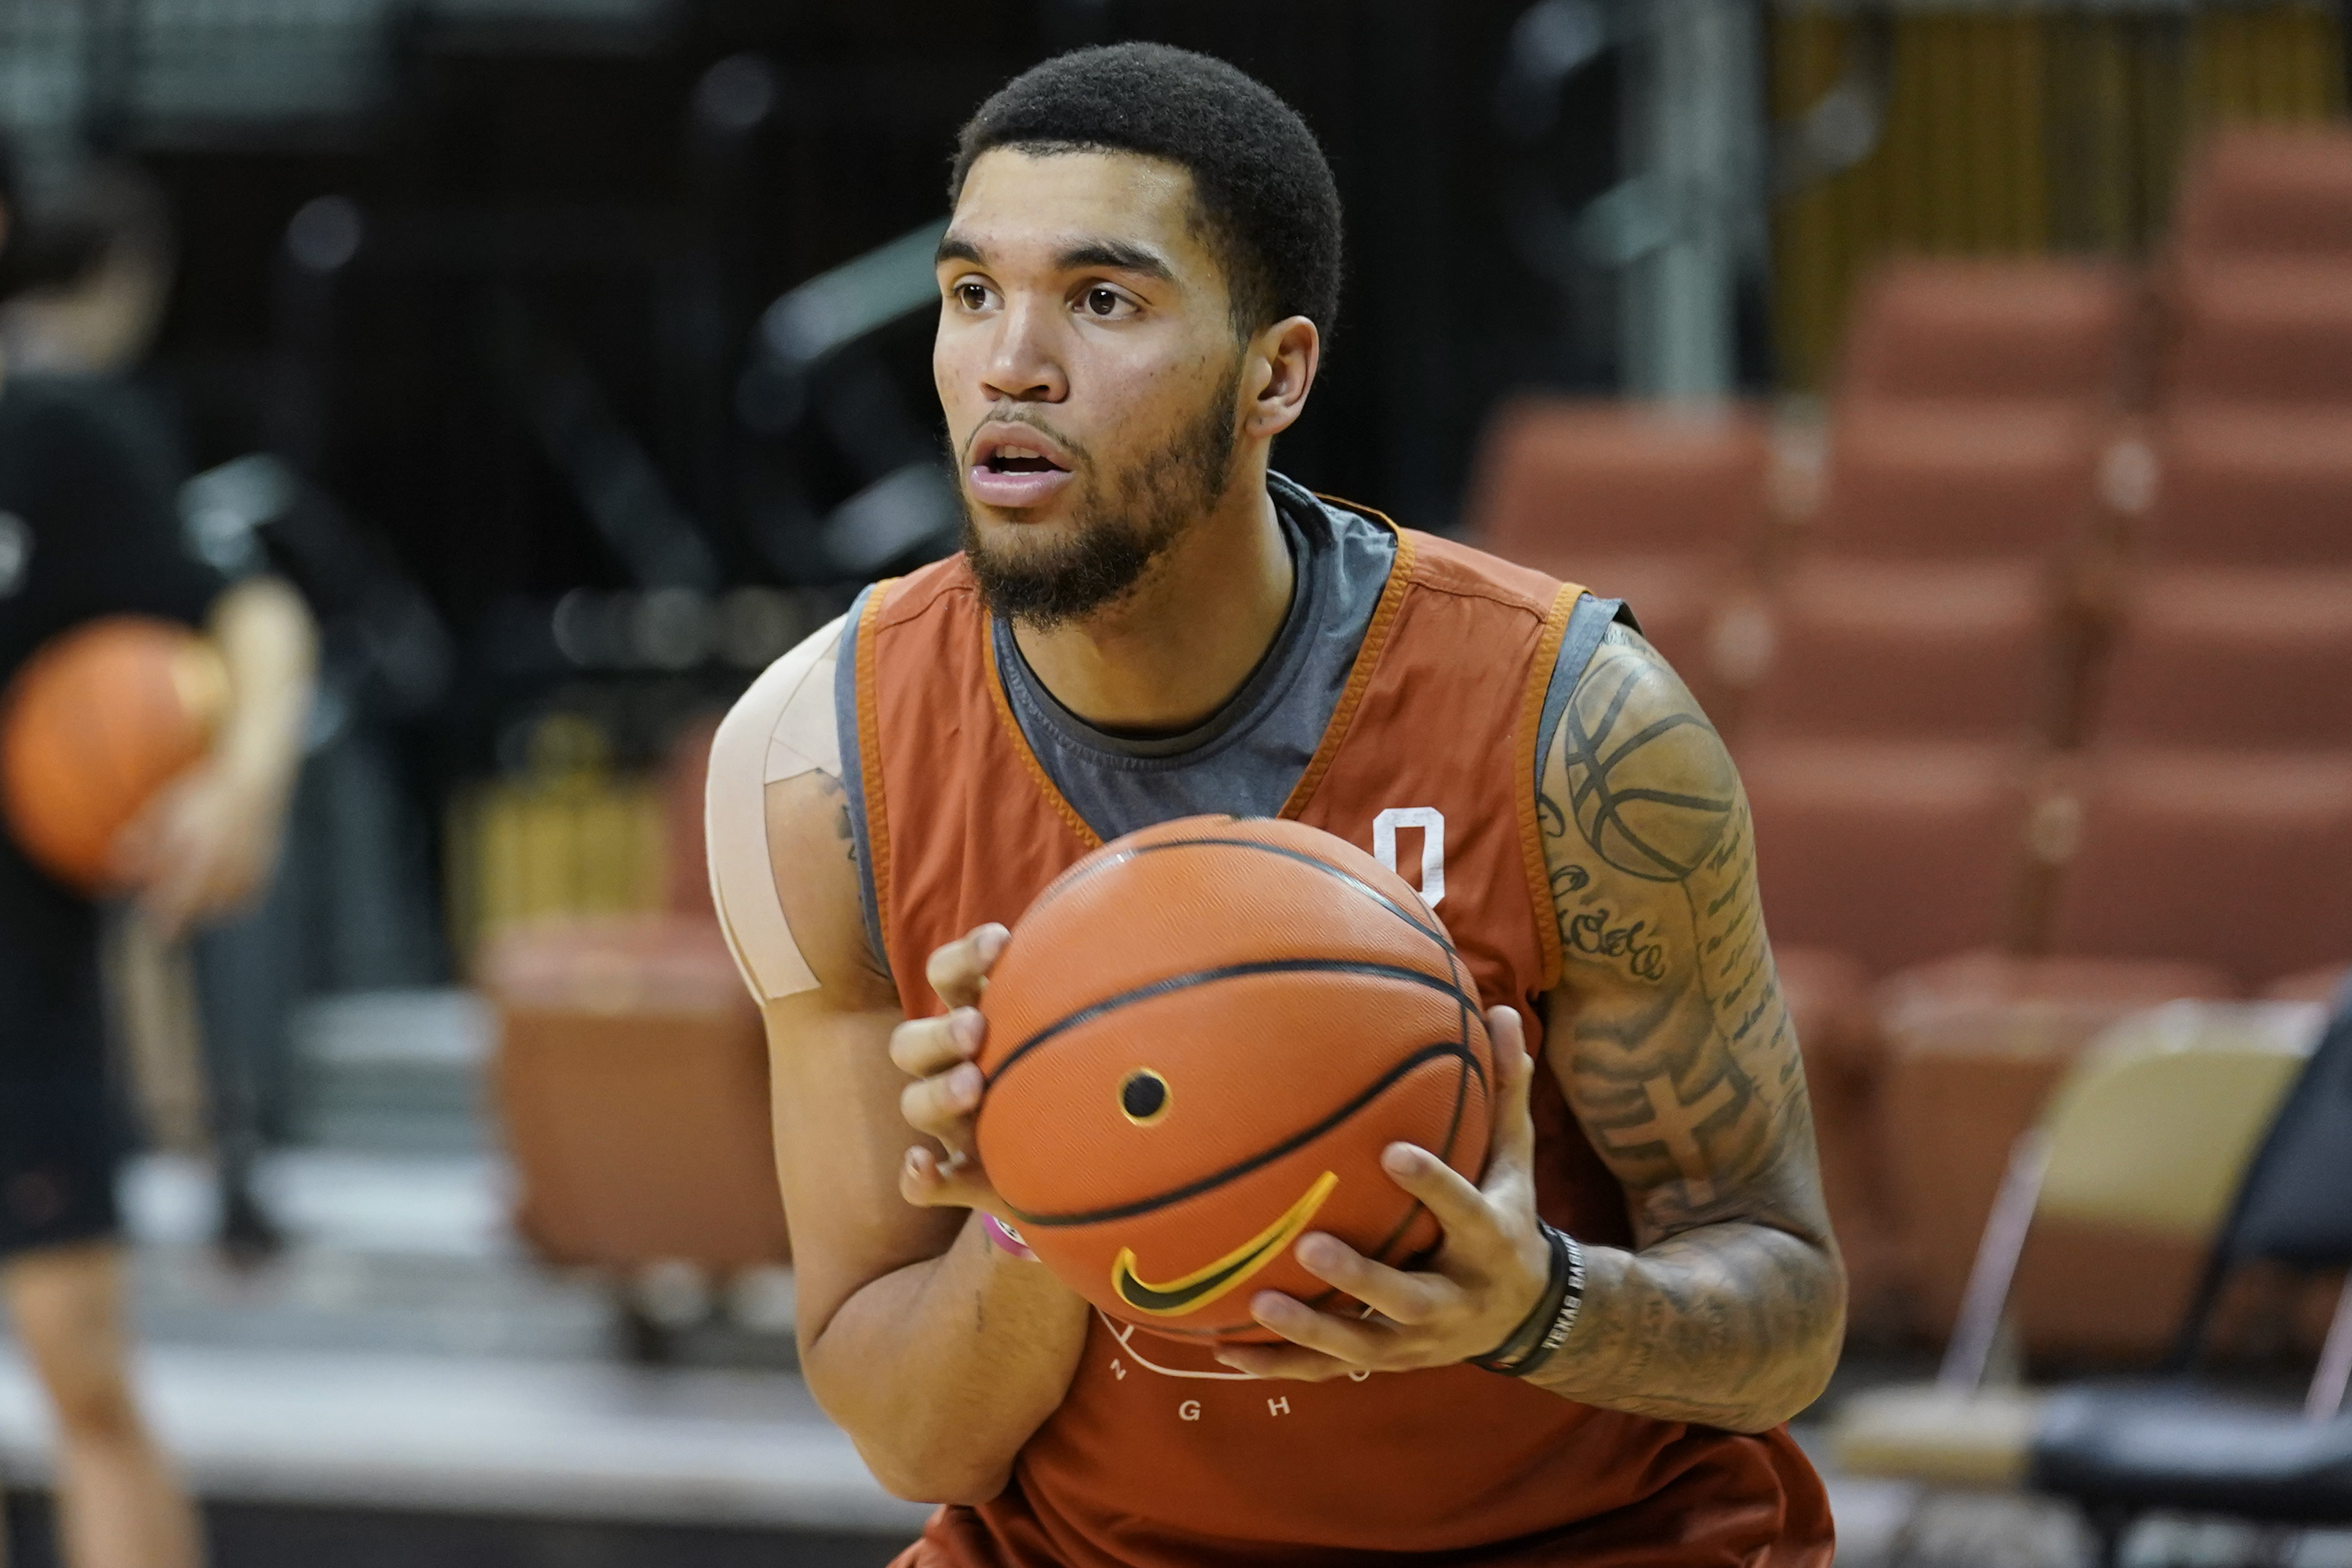 Texas forward Timmy Allen during a practice at the team's facility, Tuesday, Oct. 19, 2021, in Austin, Texas.